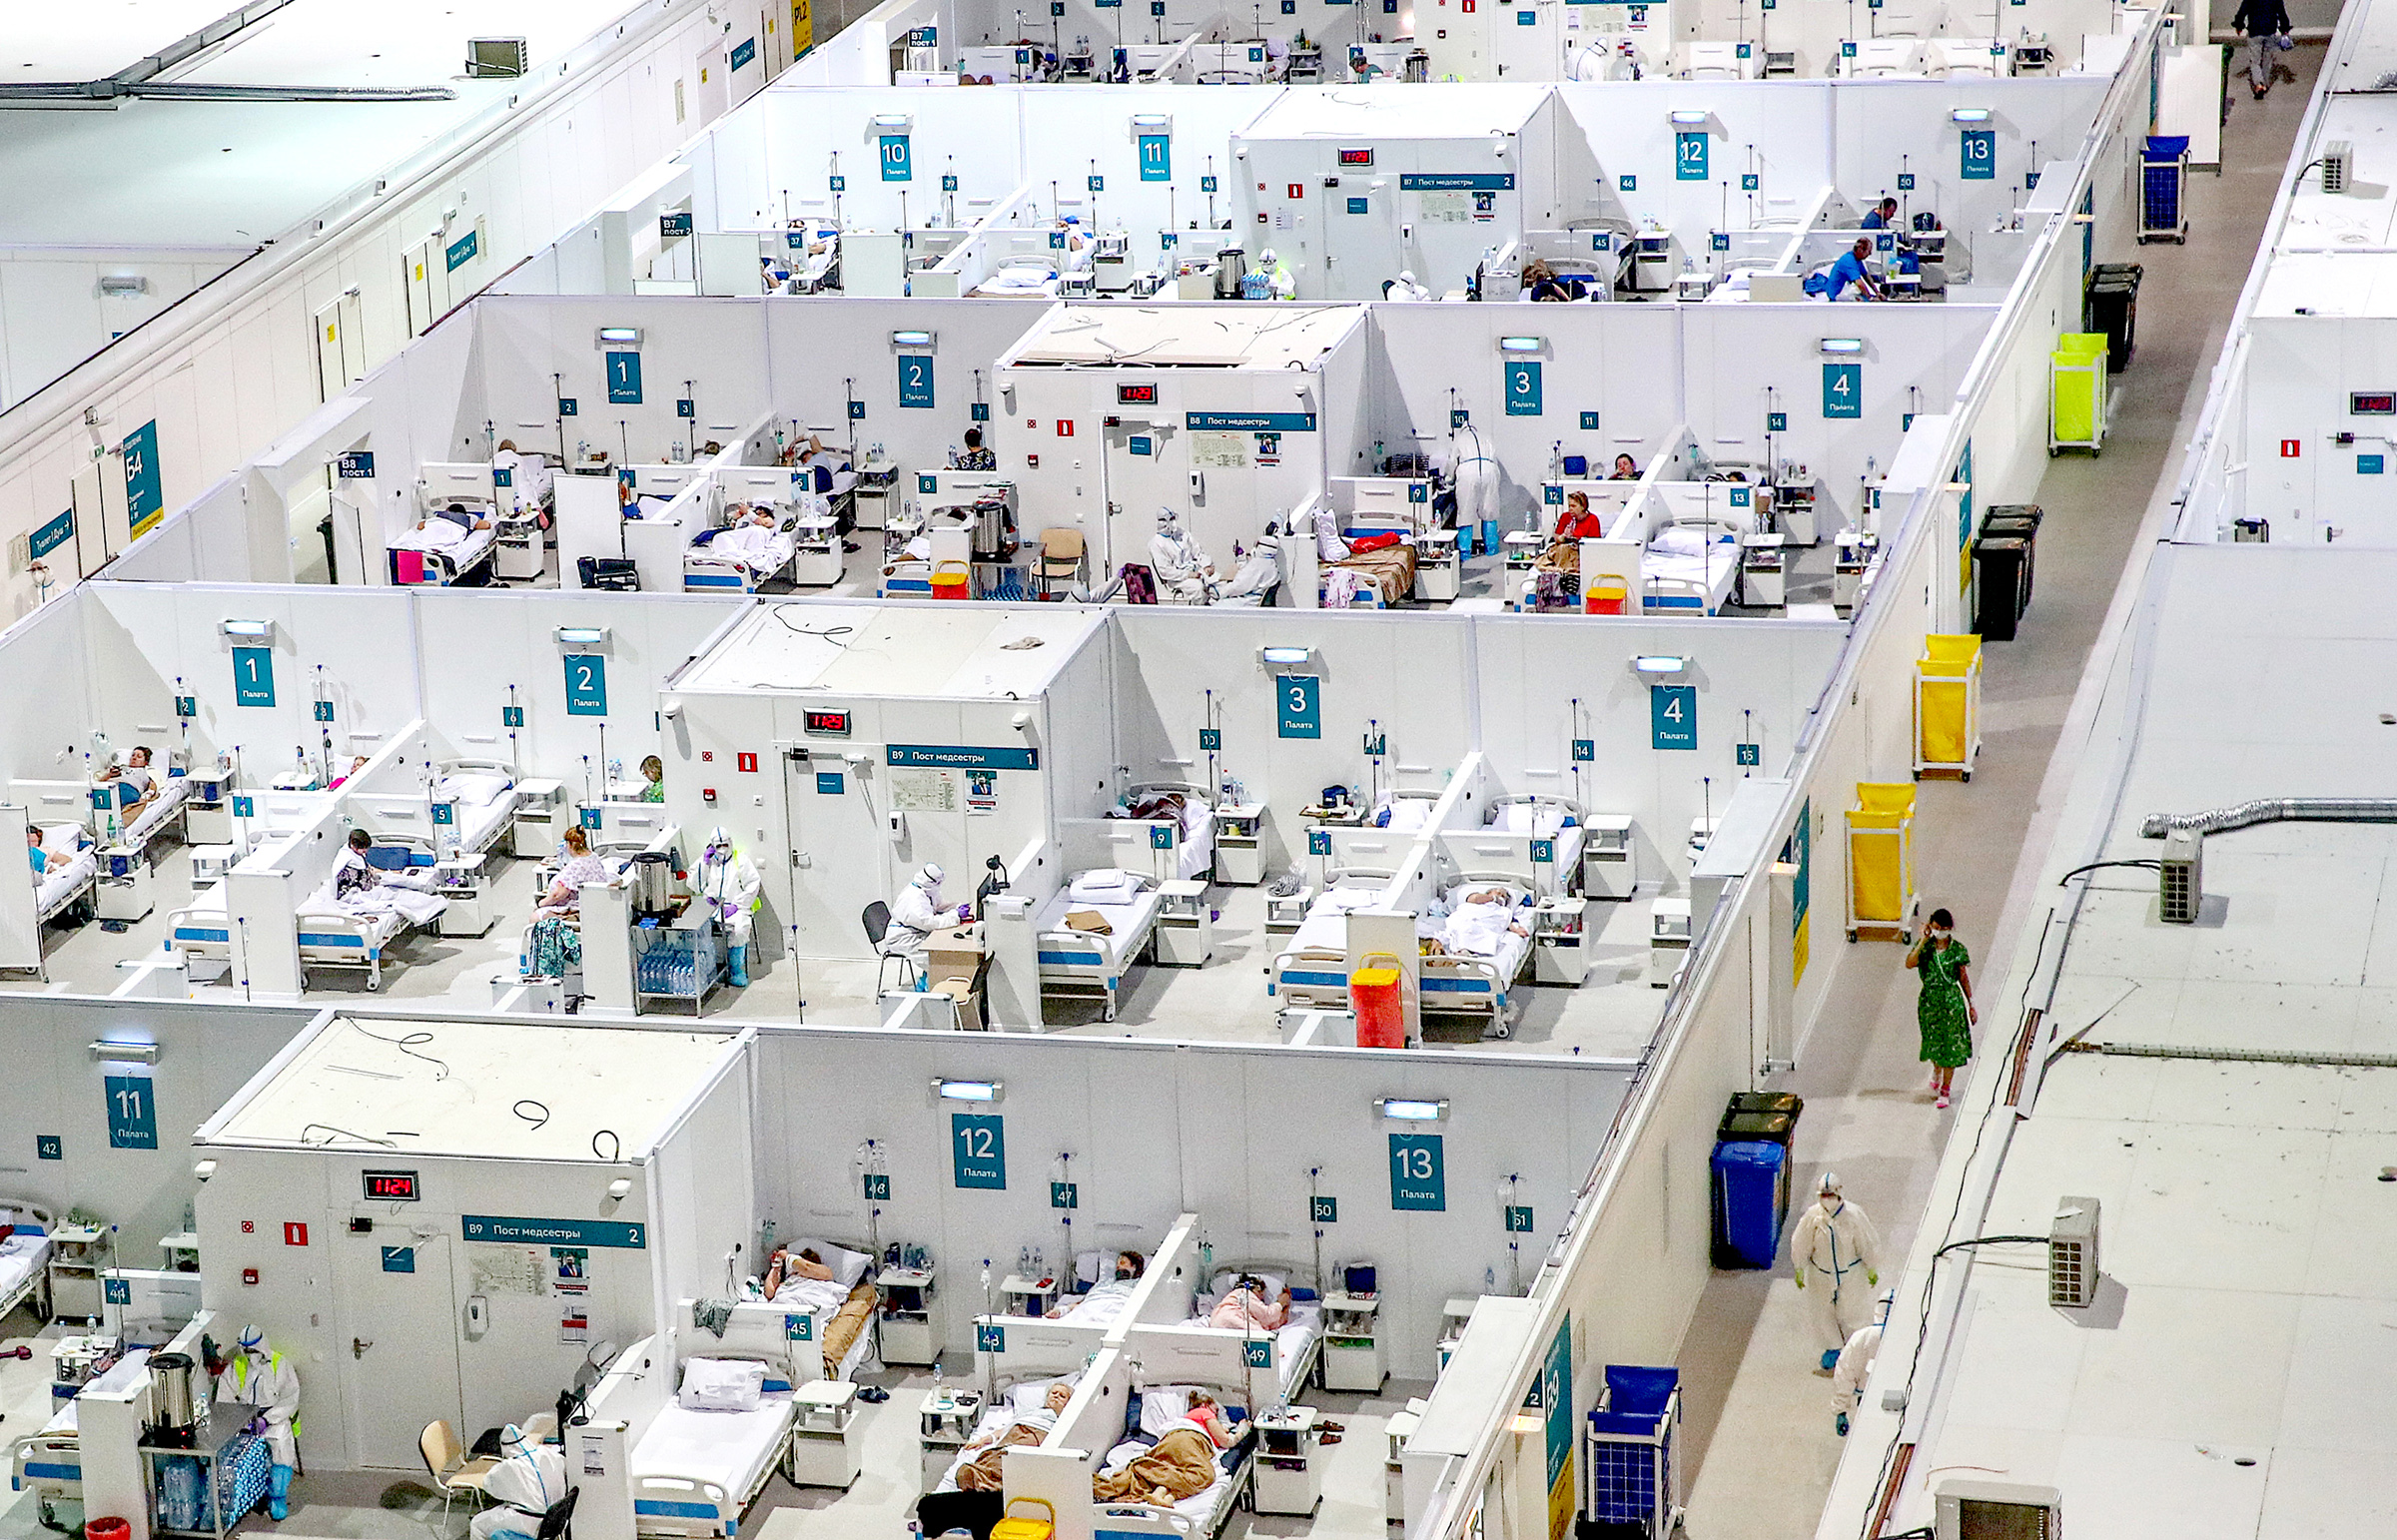 A temporary COVID-19 vaccination site at Krylatskoye Ice Palace in Moscow on Feb. 1, 2021.